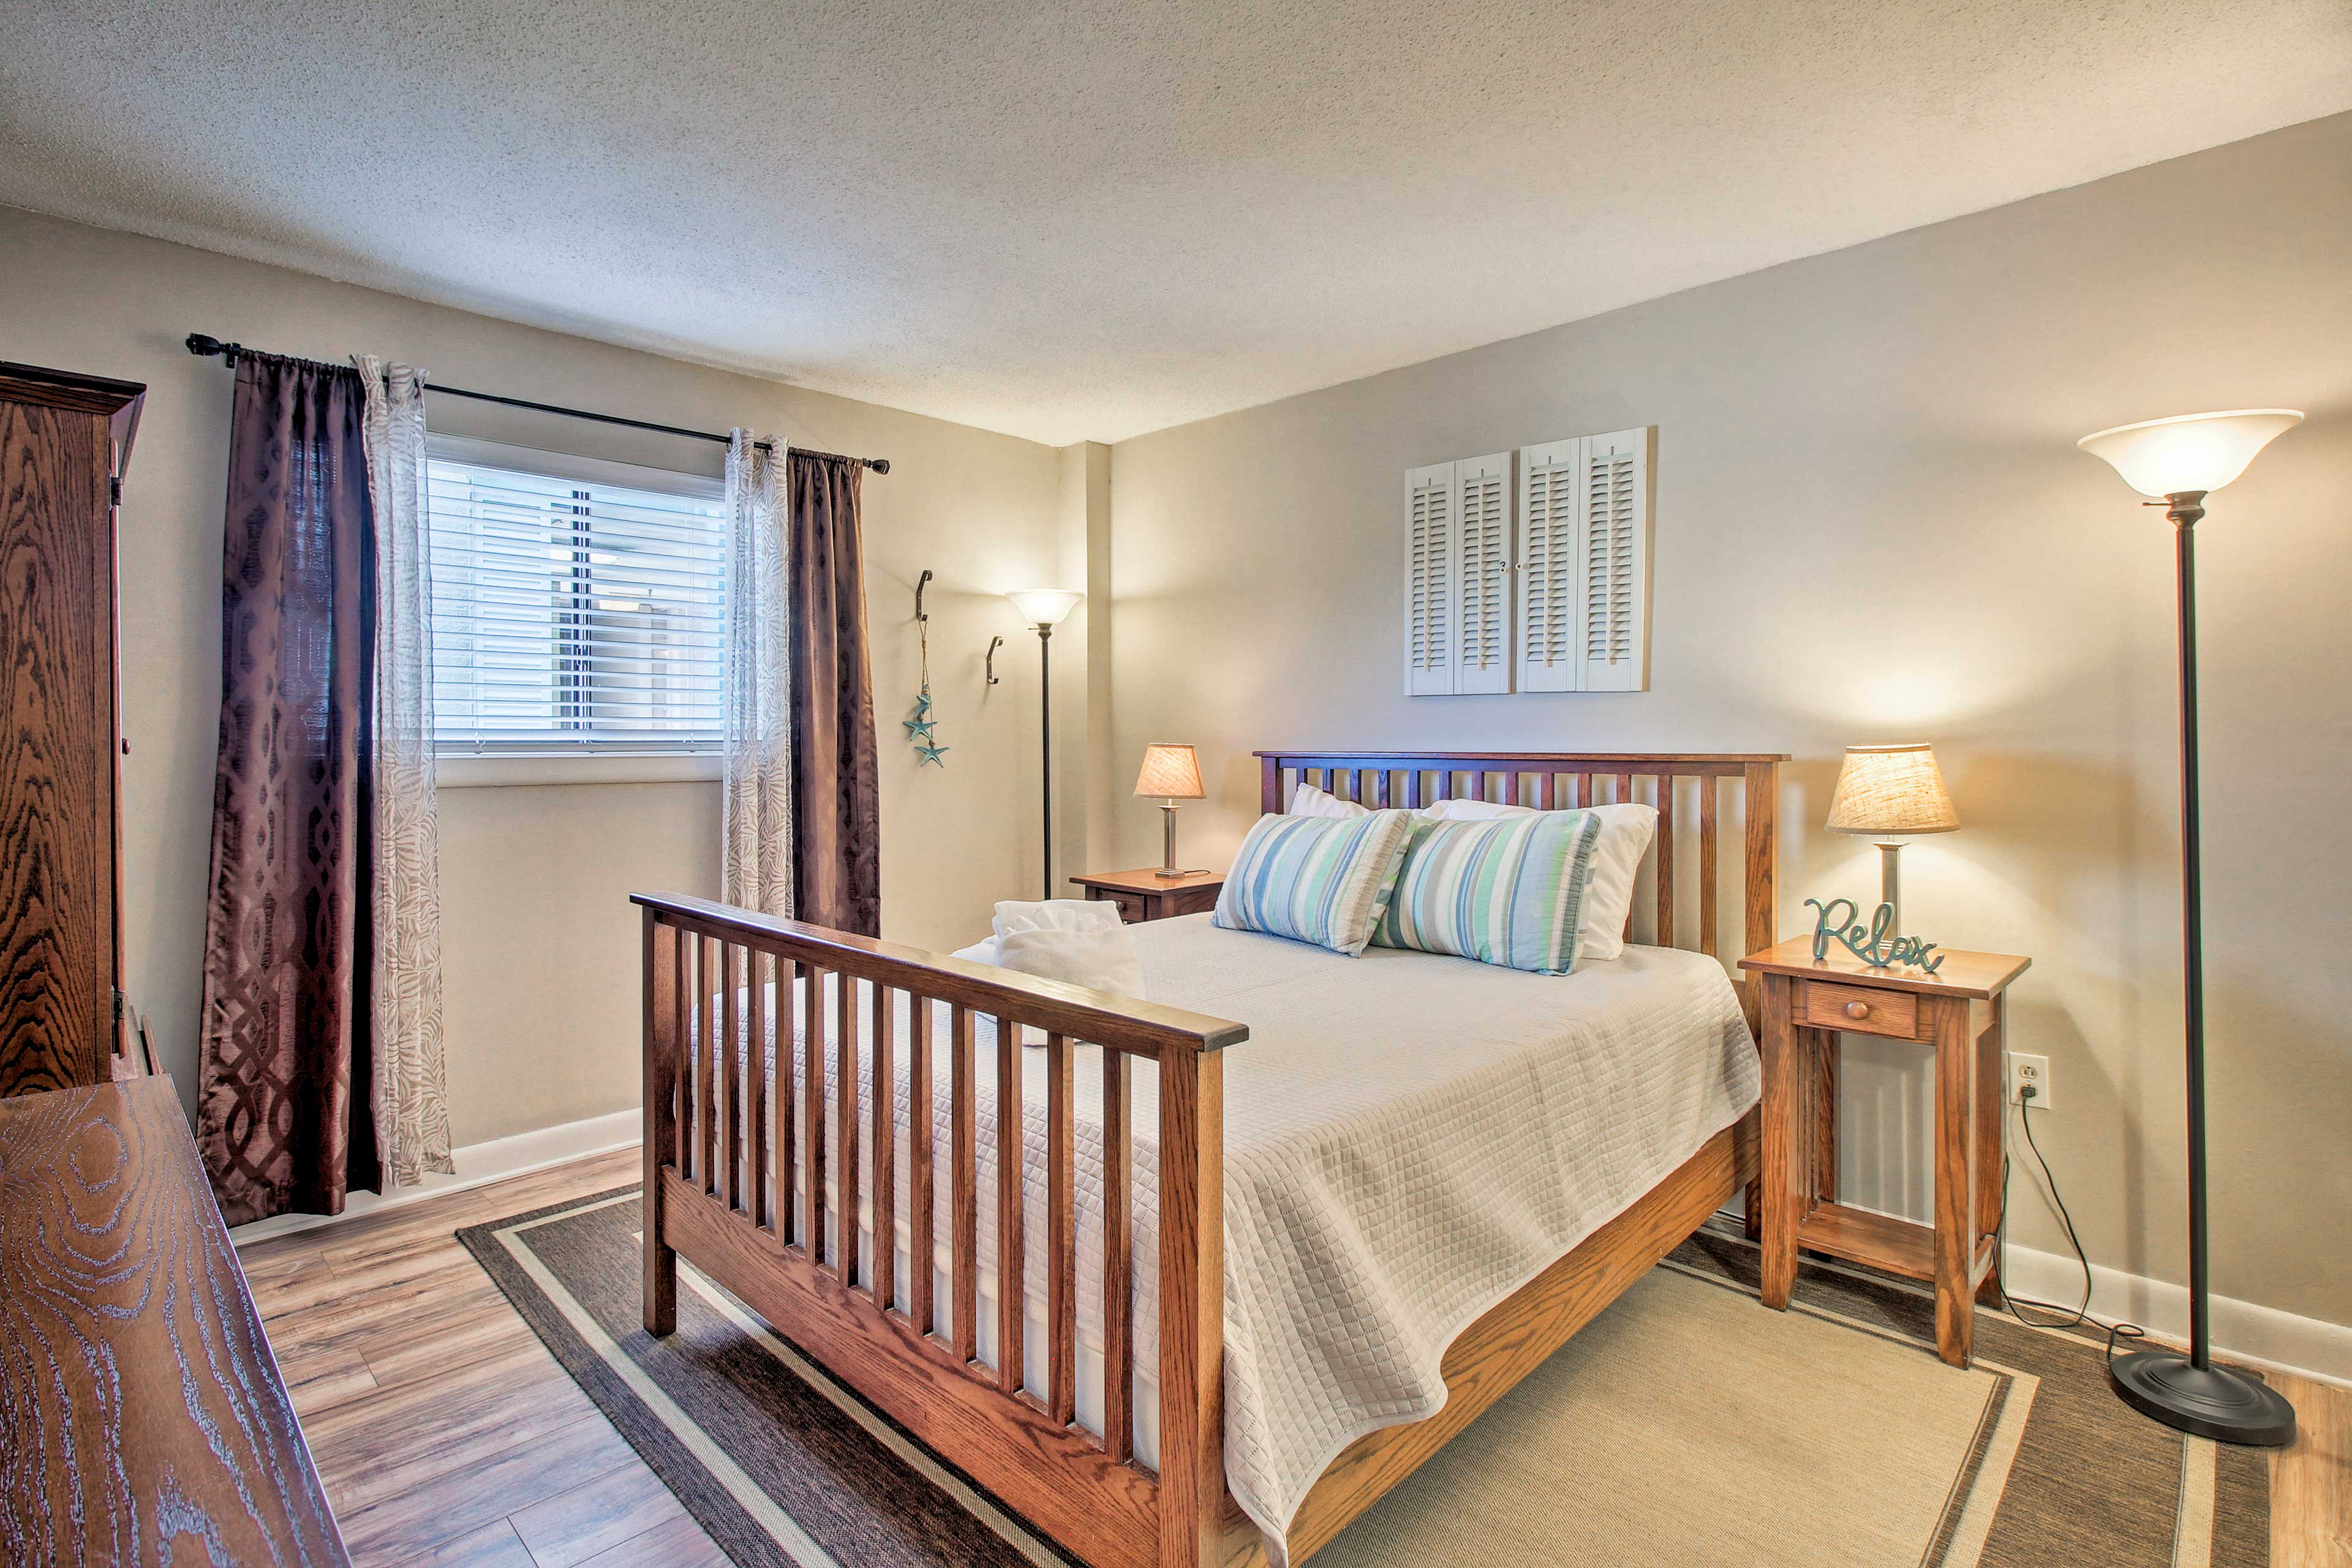 Enjoy a late-night show on the flat-screen TV in the master bedroom.